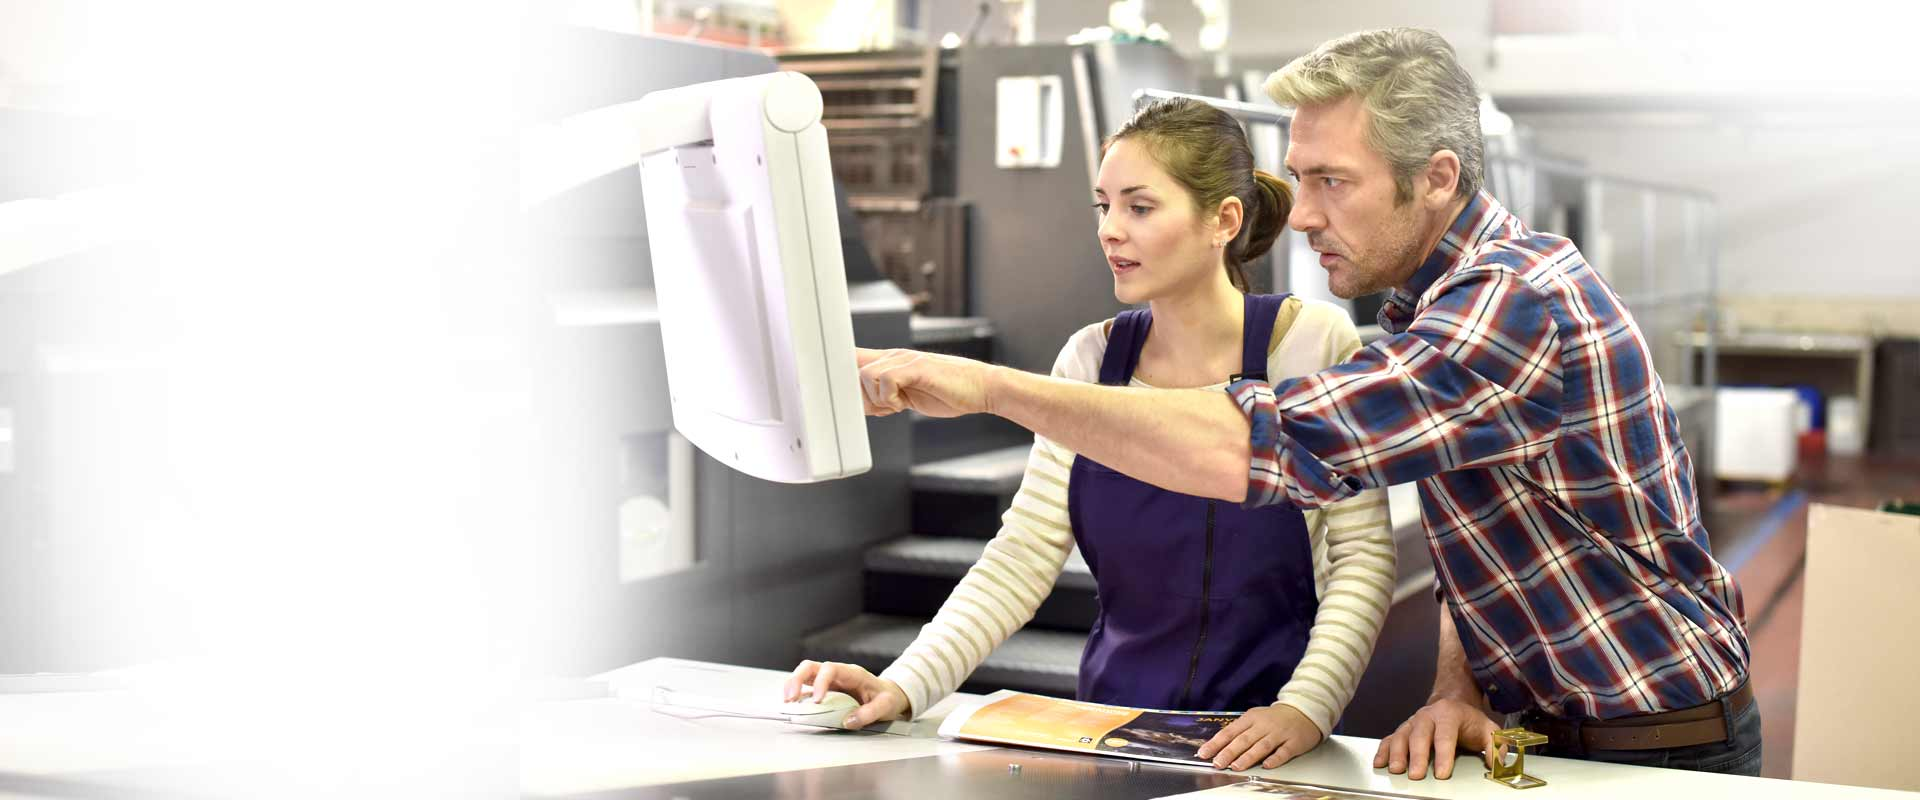 Print Workflow - Onboard new print jobs easier